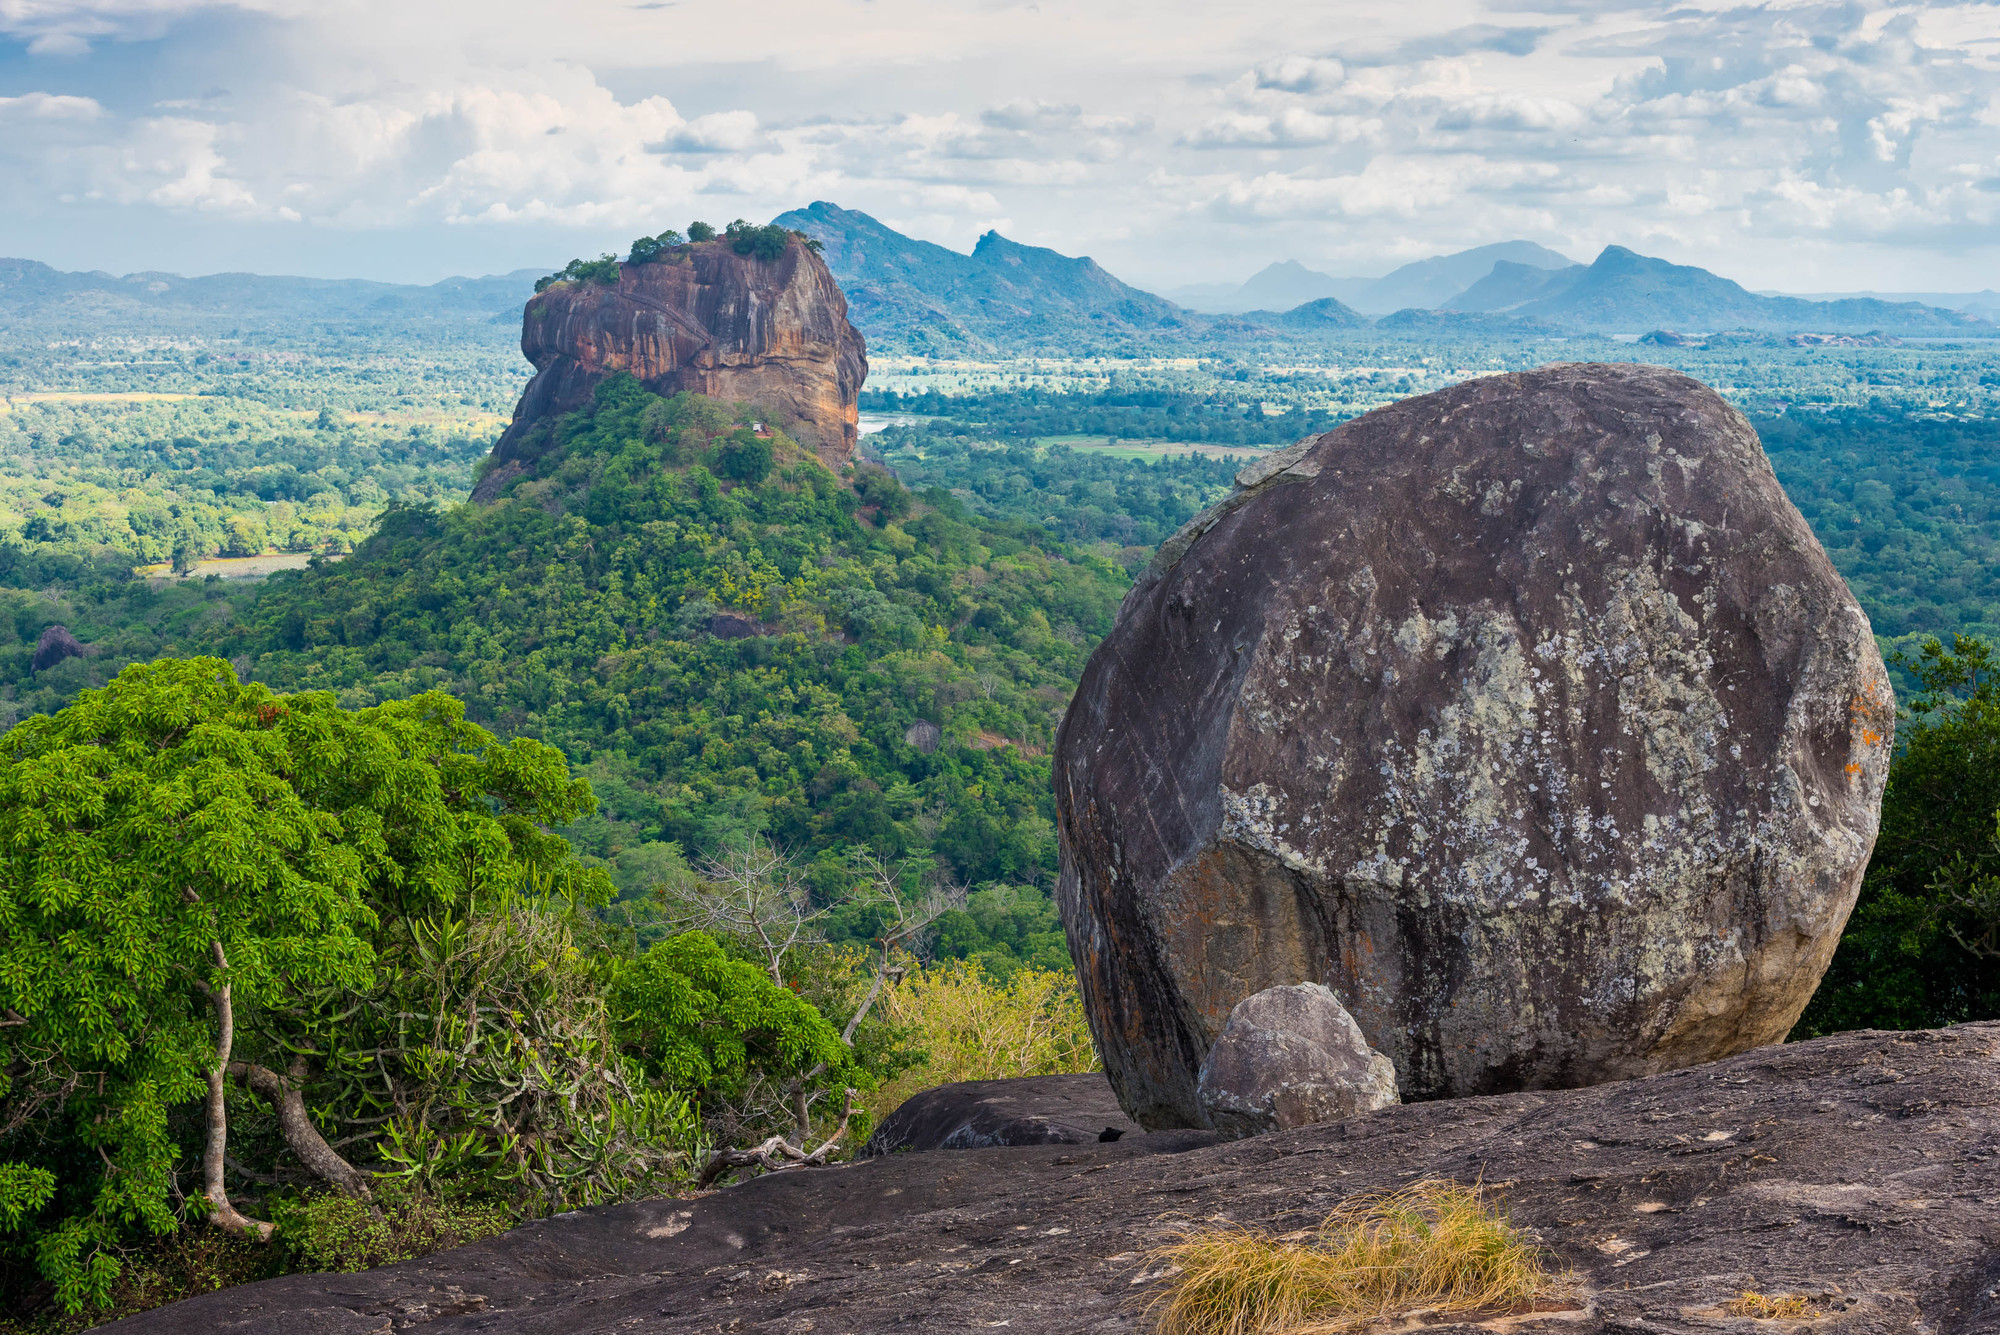 7 Reasons Why Holidaying in Sri Lanka Saves You Money - SpaDreams. Sigiriya Lion Rock fortress and landscape in Sri Lanka. 7 Reasons Why Holidaying in Sri Lanka Saves You Money - SpaDreams